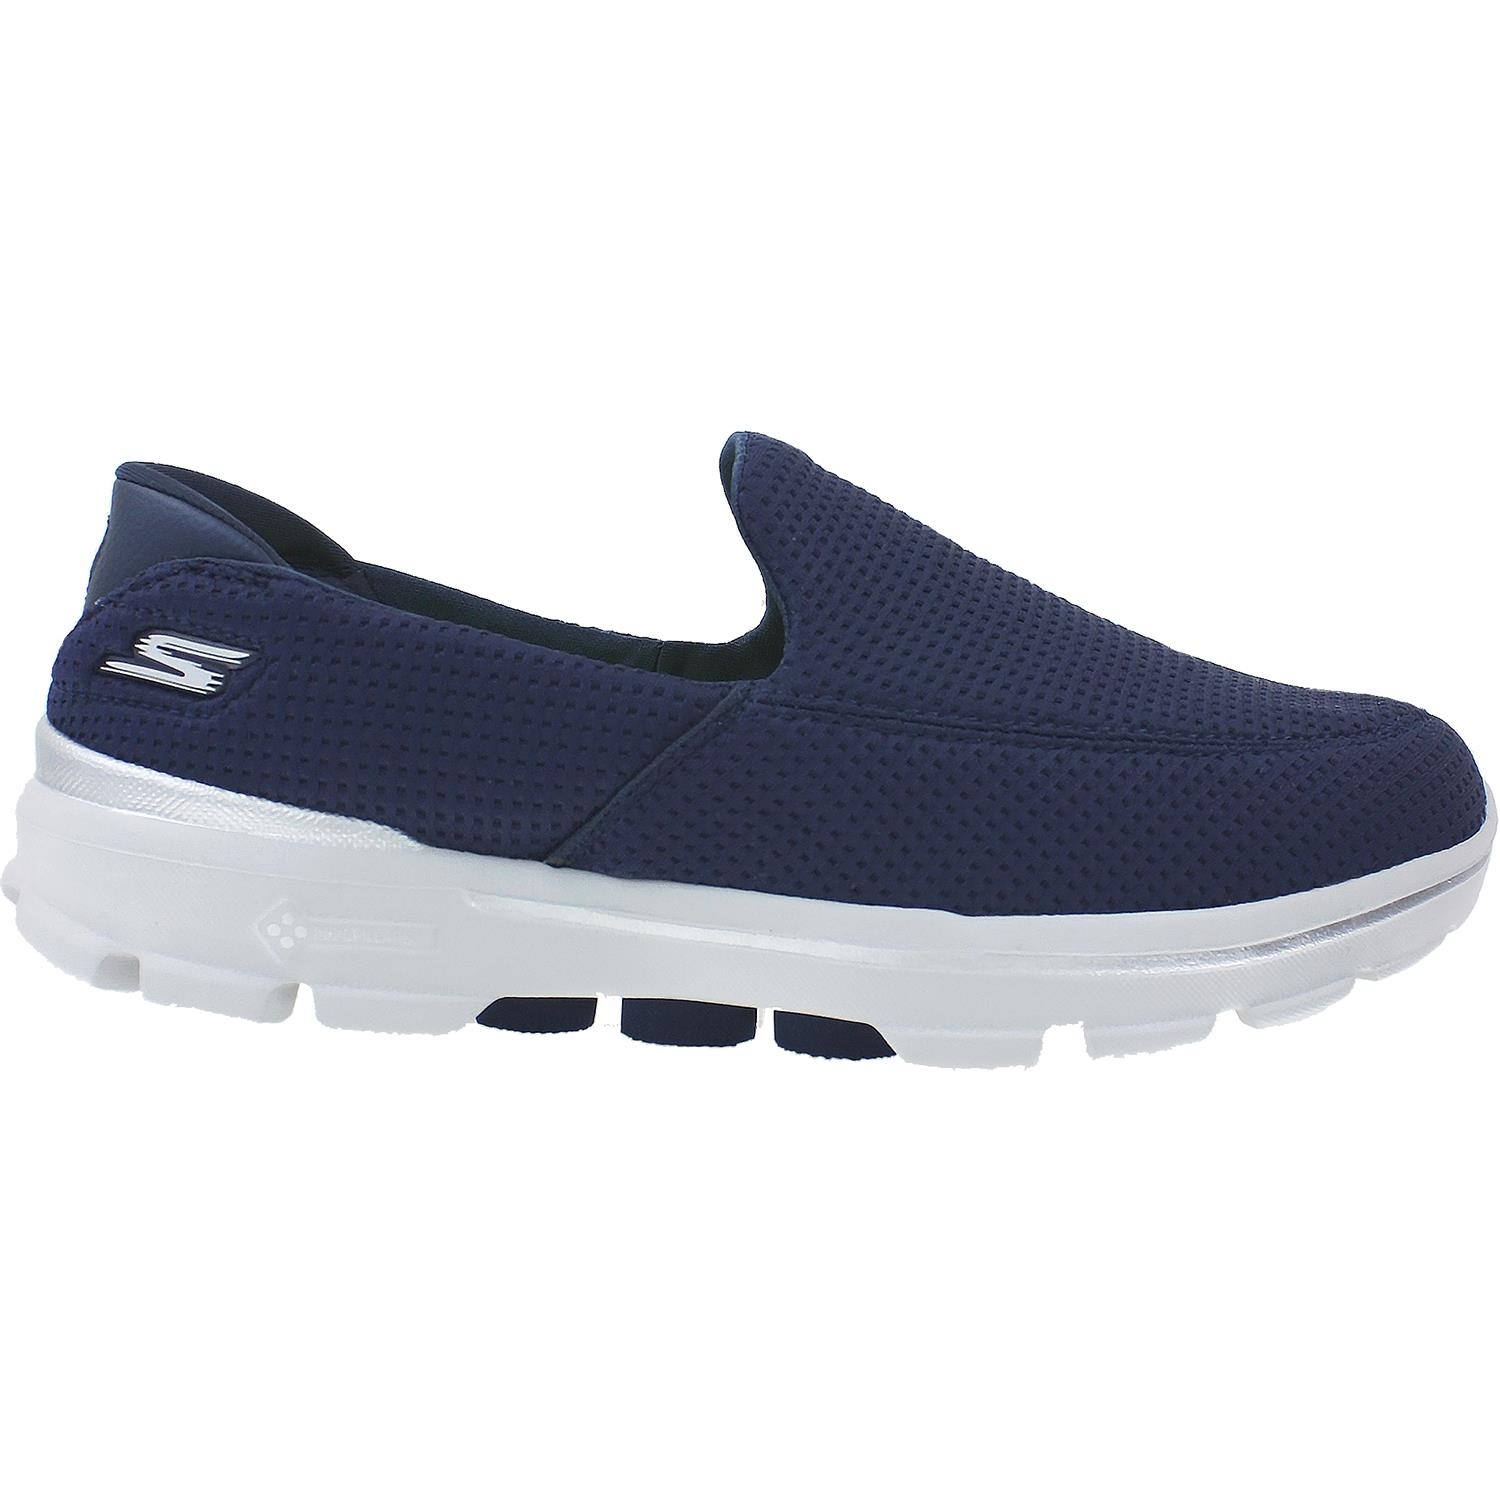 Skechers Performance Men's Go Walk 3 Unfold Walking Shoe,Navy,13 M